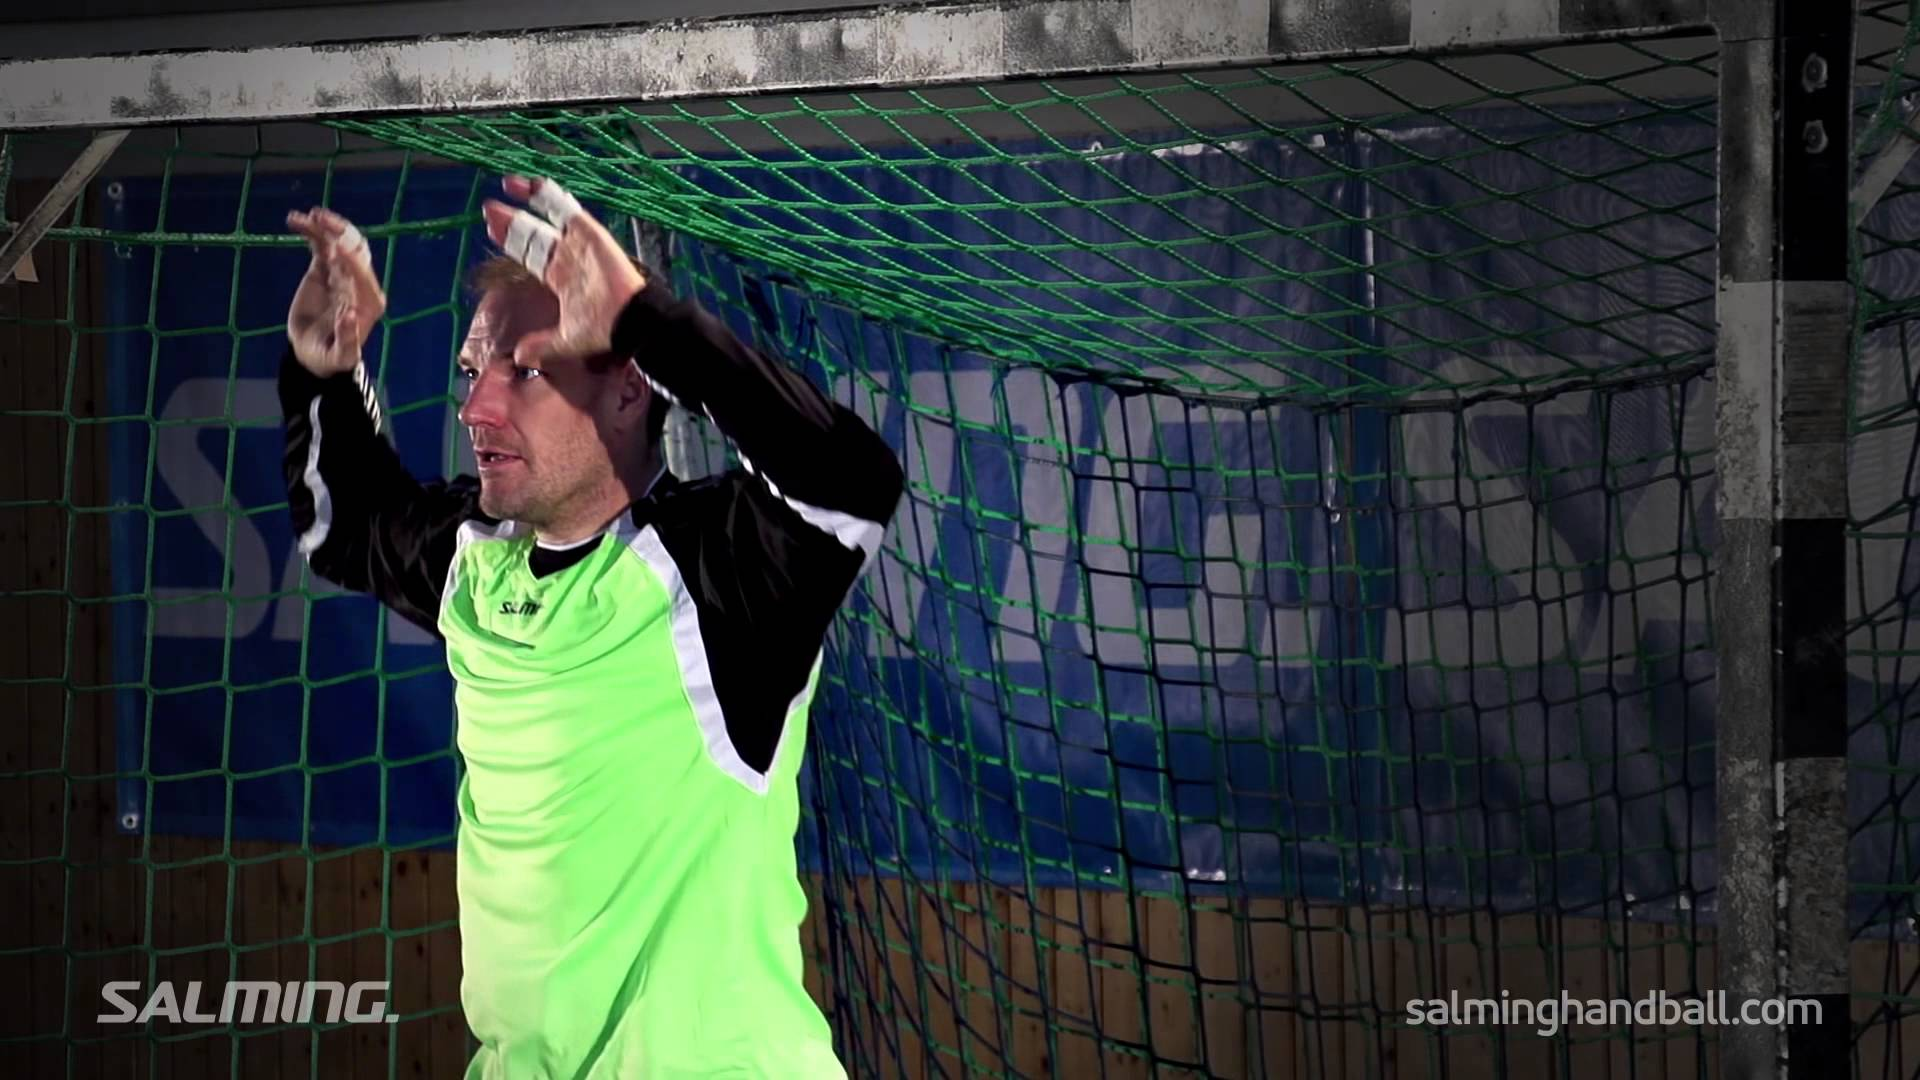 Salming Handball Academy - Goalie - Saving high shots - YouTube